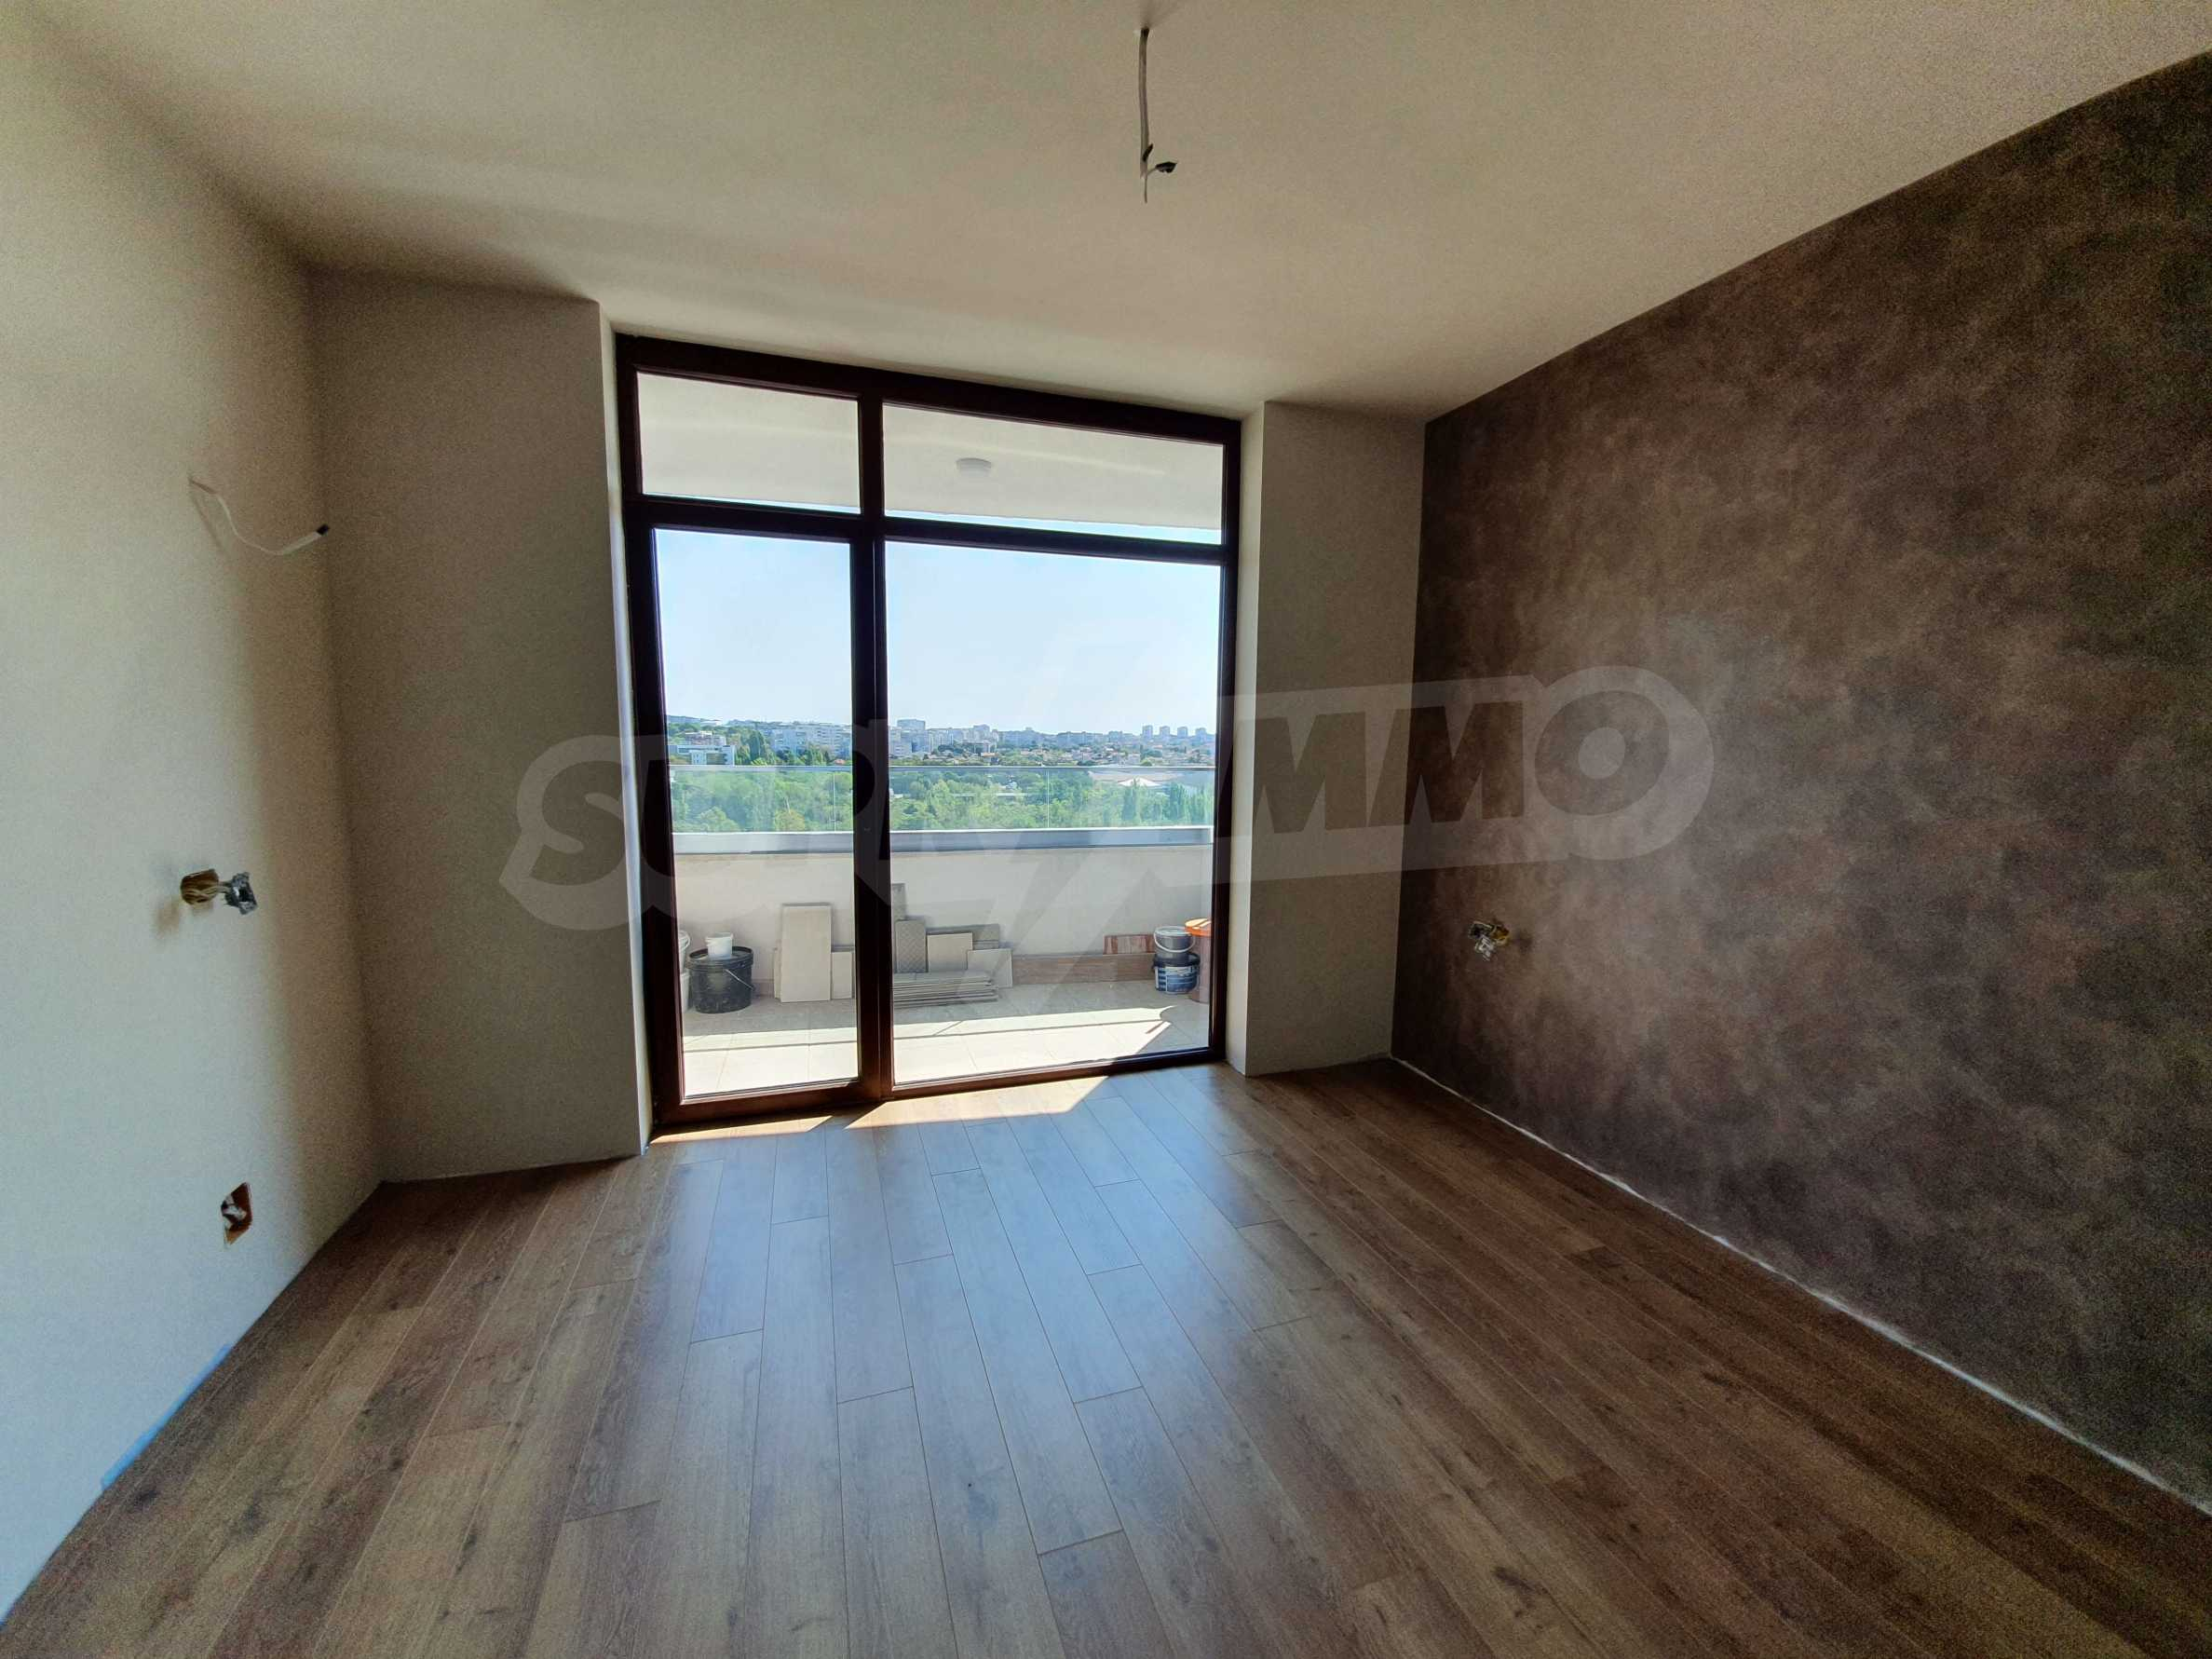 Panoramic two-bedroom apartment with views of the lake and Varna 13